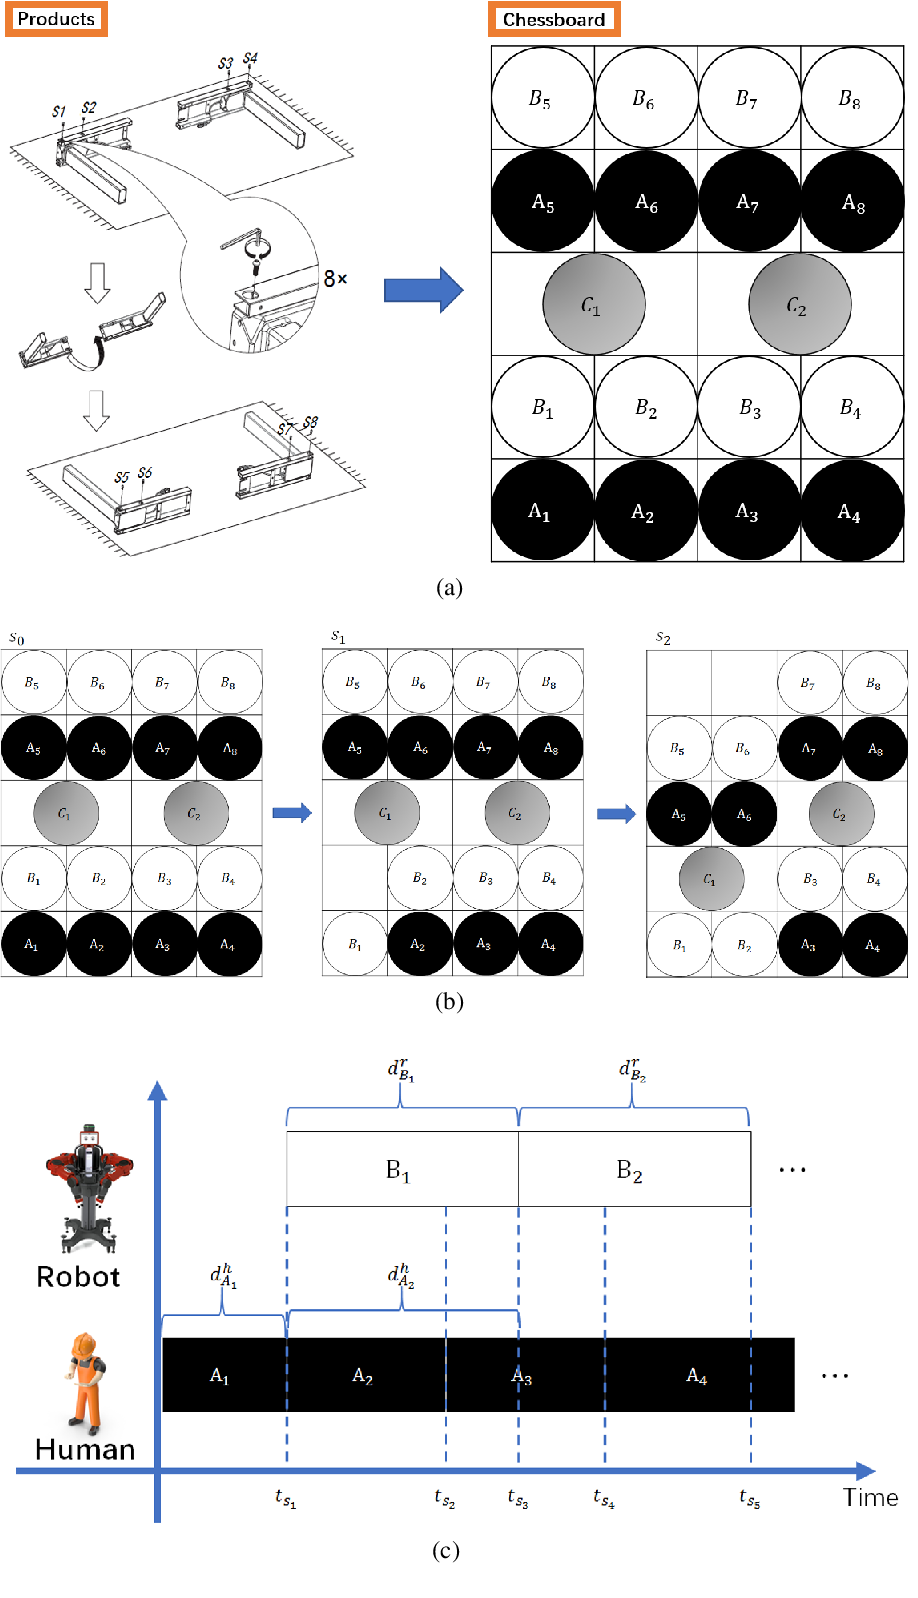 Figure 2 for Mastering the working sequence in human-robot collaborative assembly based on reinforcement learning